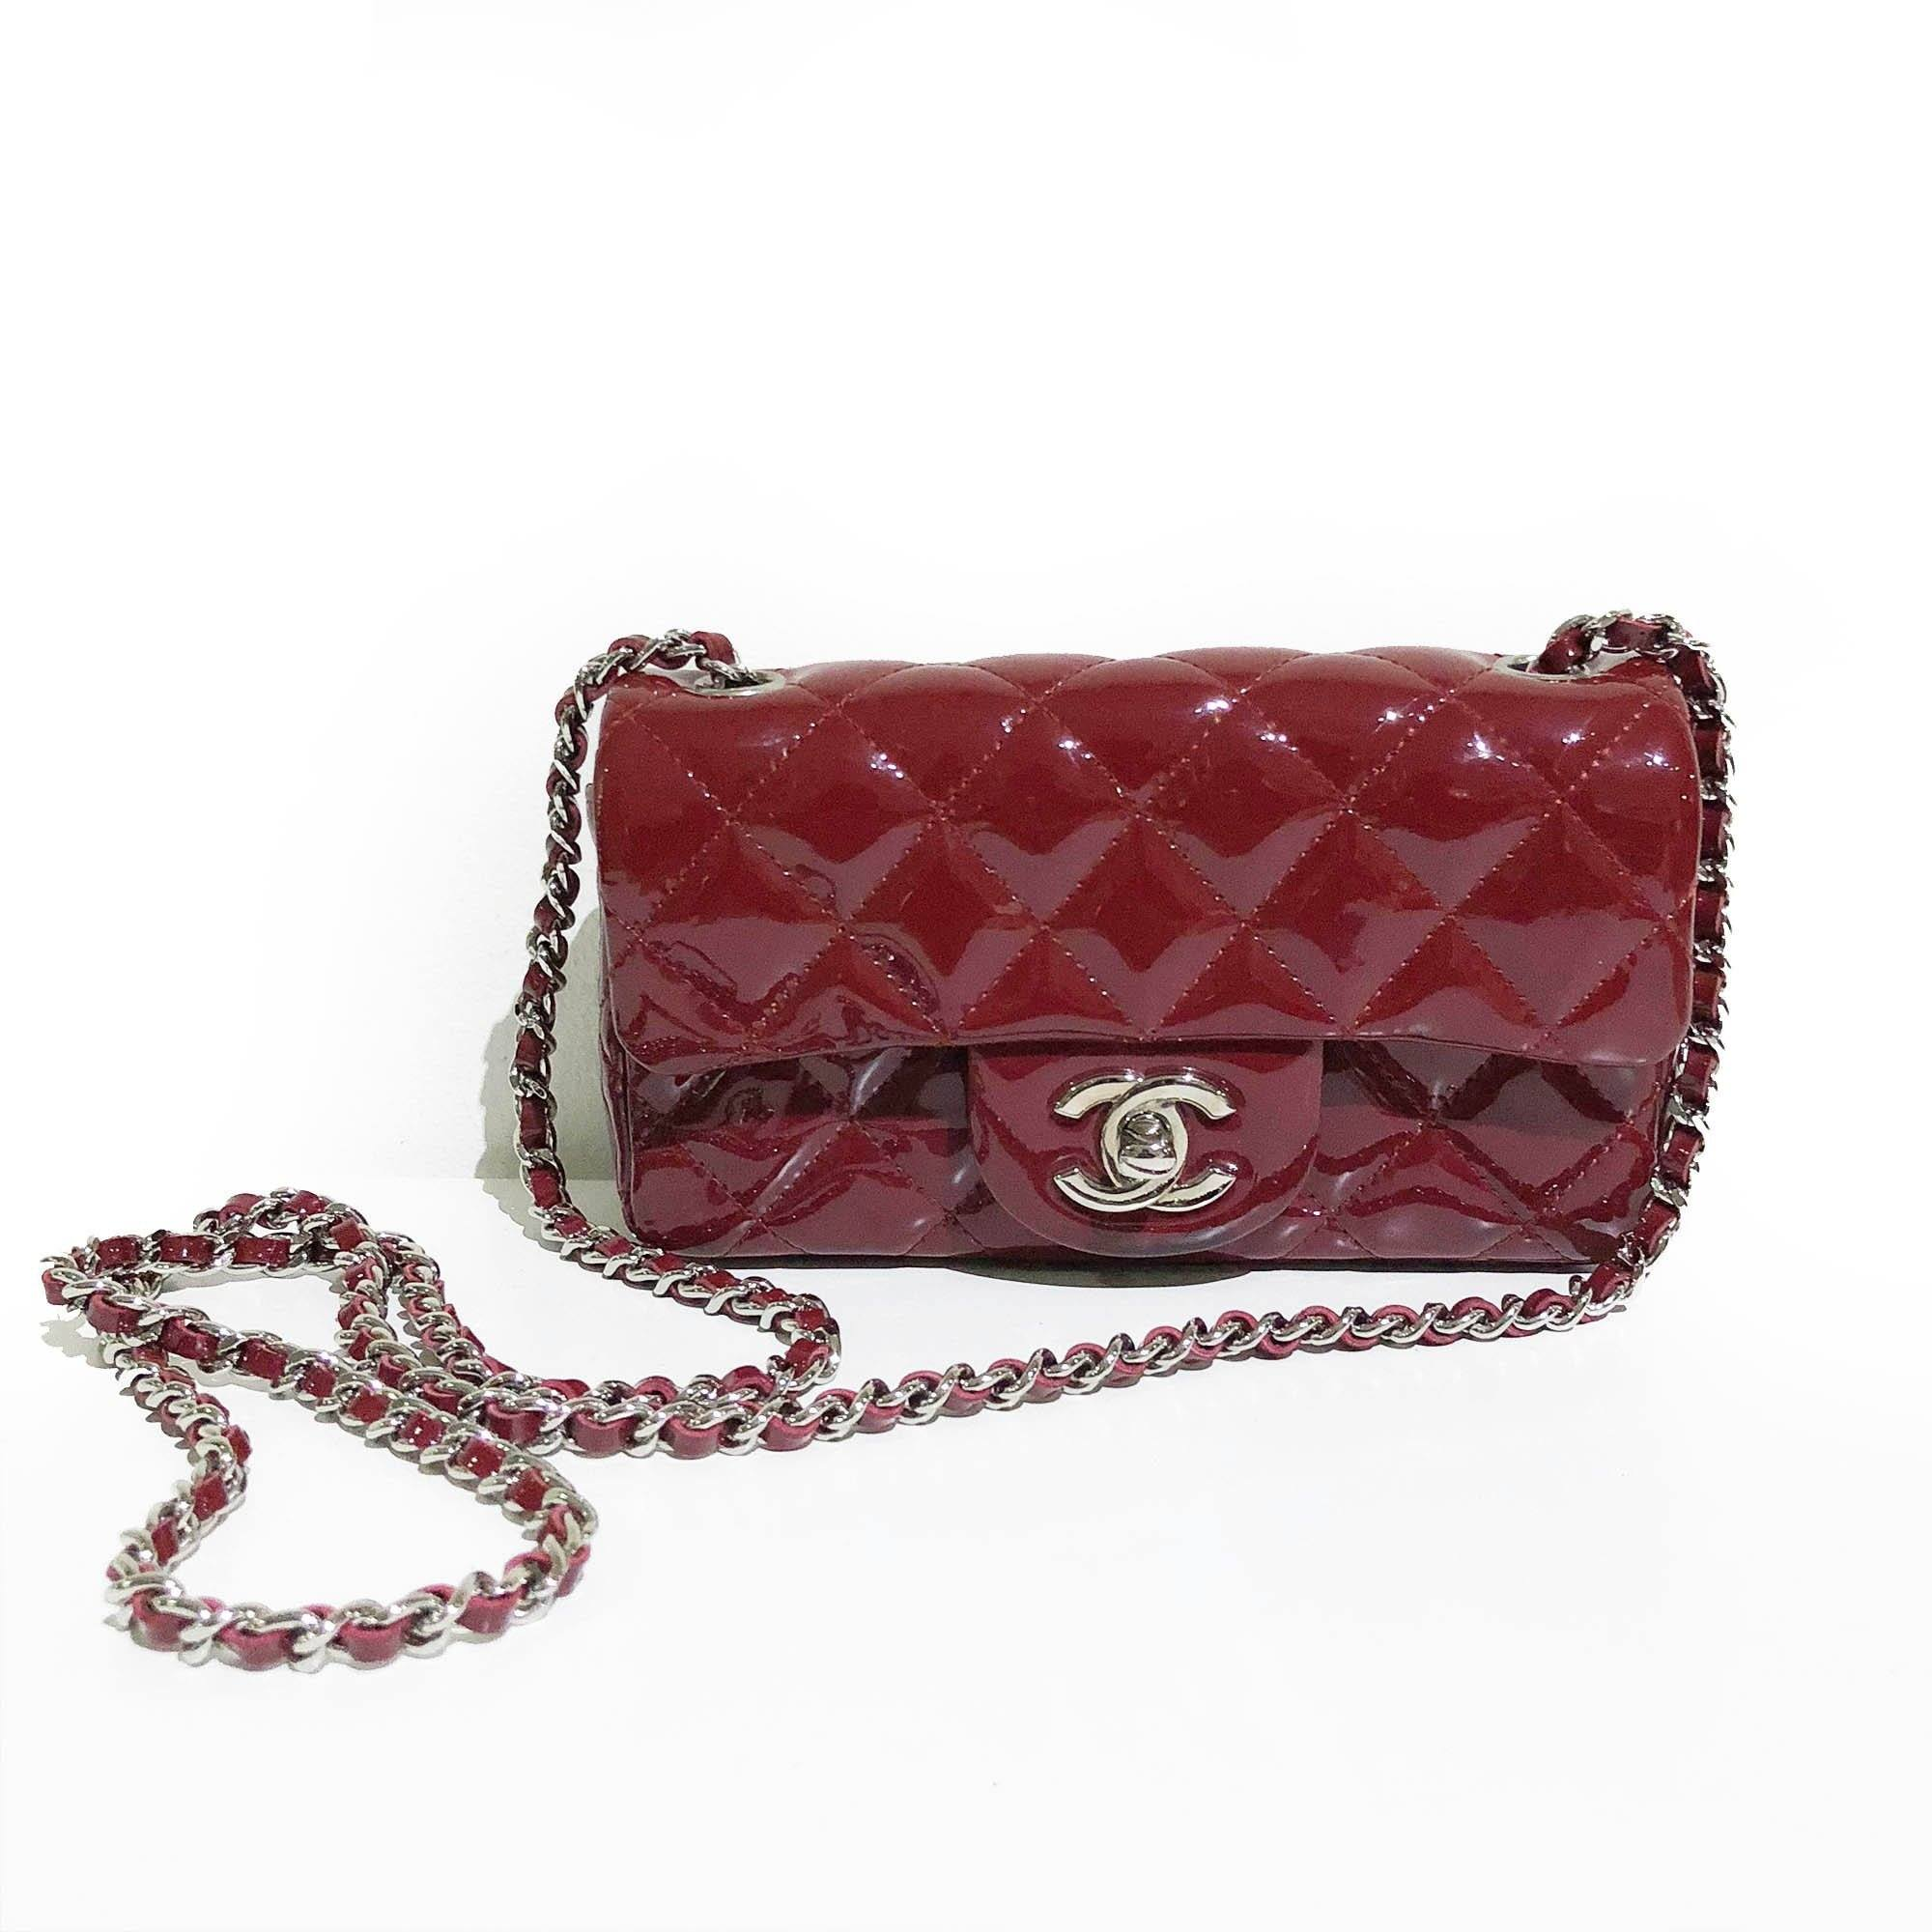 Chanel Burgundy Extra Mini Rectangle Flap Bag